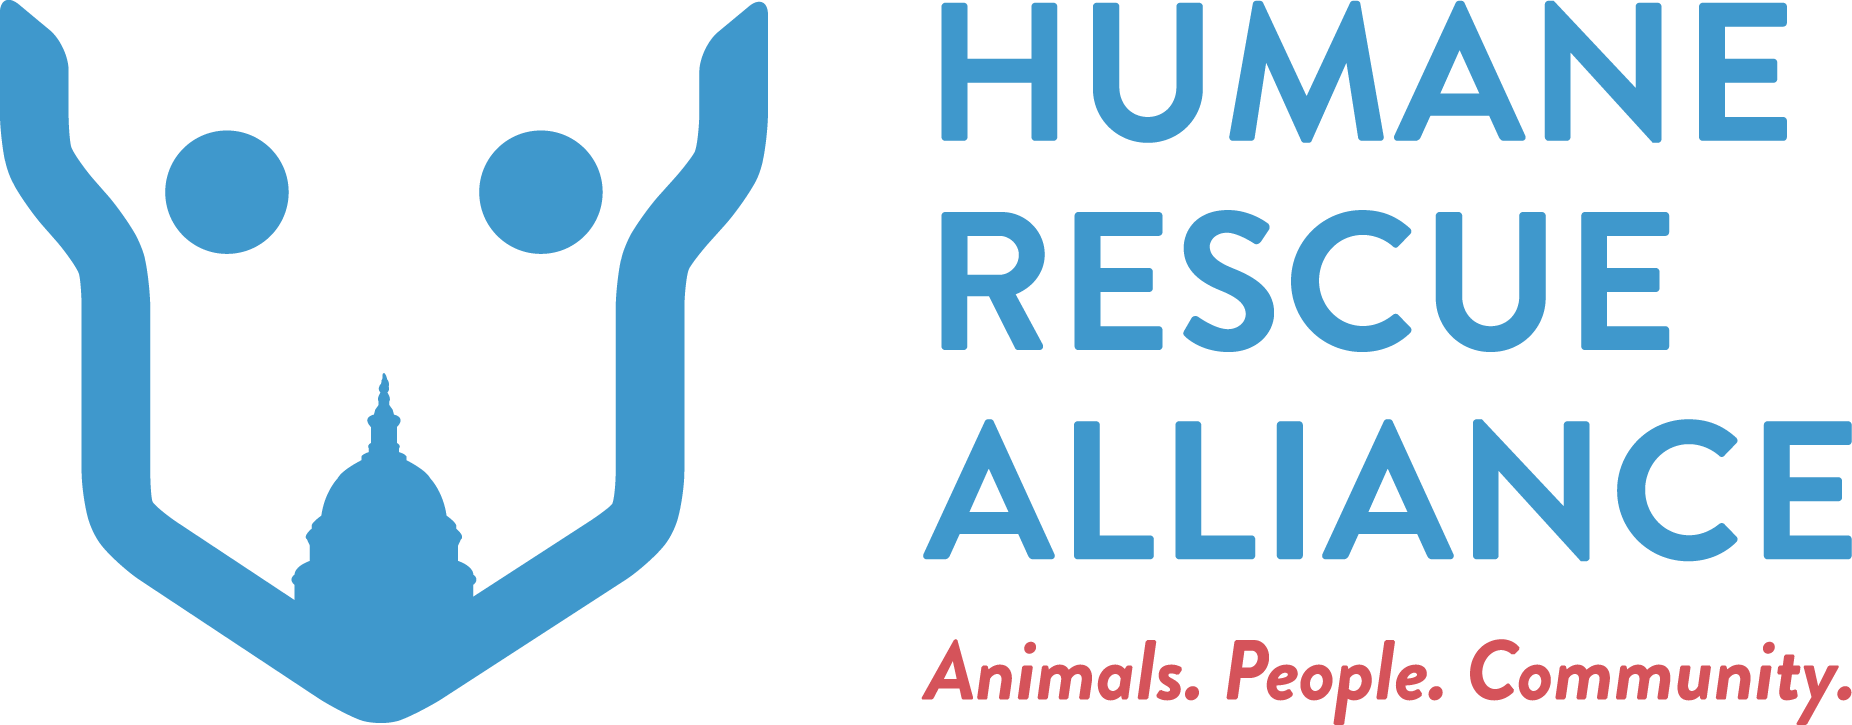 humane rescue alliance logo